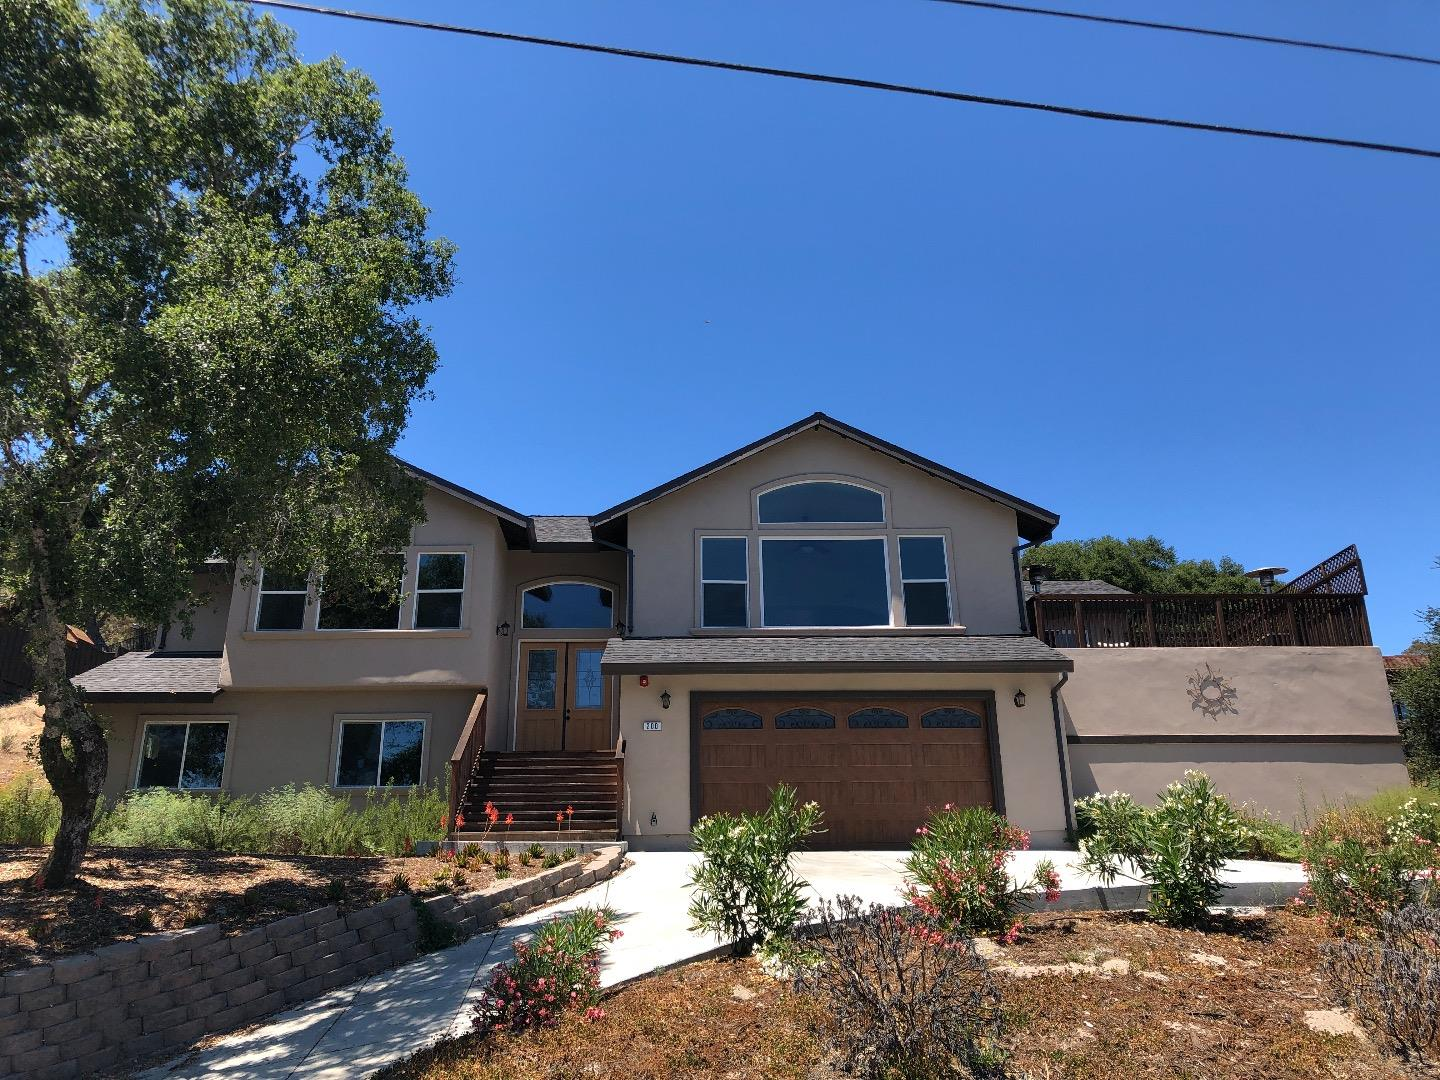 Looking for the coastal lifestyle and community? Your wait is over! This 3 year old custom home, has 2,349 sq.ft.. 3 bedrooms and 2.5 baths and is in the sought after Whispering Pines neighborhood of Scotts Valley.  Enjoy spectacular sunrises and sunsets with views of Scotts Valley hills and mountains in the background. Enjoy the soaring vaulted ceilings, large windows and the open kitchen and deck is perfect for entertaining.  Once you are home, no need to get in the car, great walking neighborhood and shopping, movies, dining and Skyparks soccer, tennis, playgrounds  and award winning schools... all close by. There is awesome mt biking and hiking among the redwoods, Henry Cowell back entrance is just down the street. For the commuters, HWY17 to Silicon Valley or the beach is all close by.